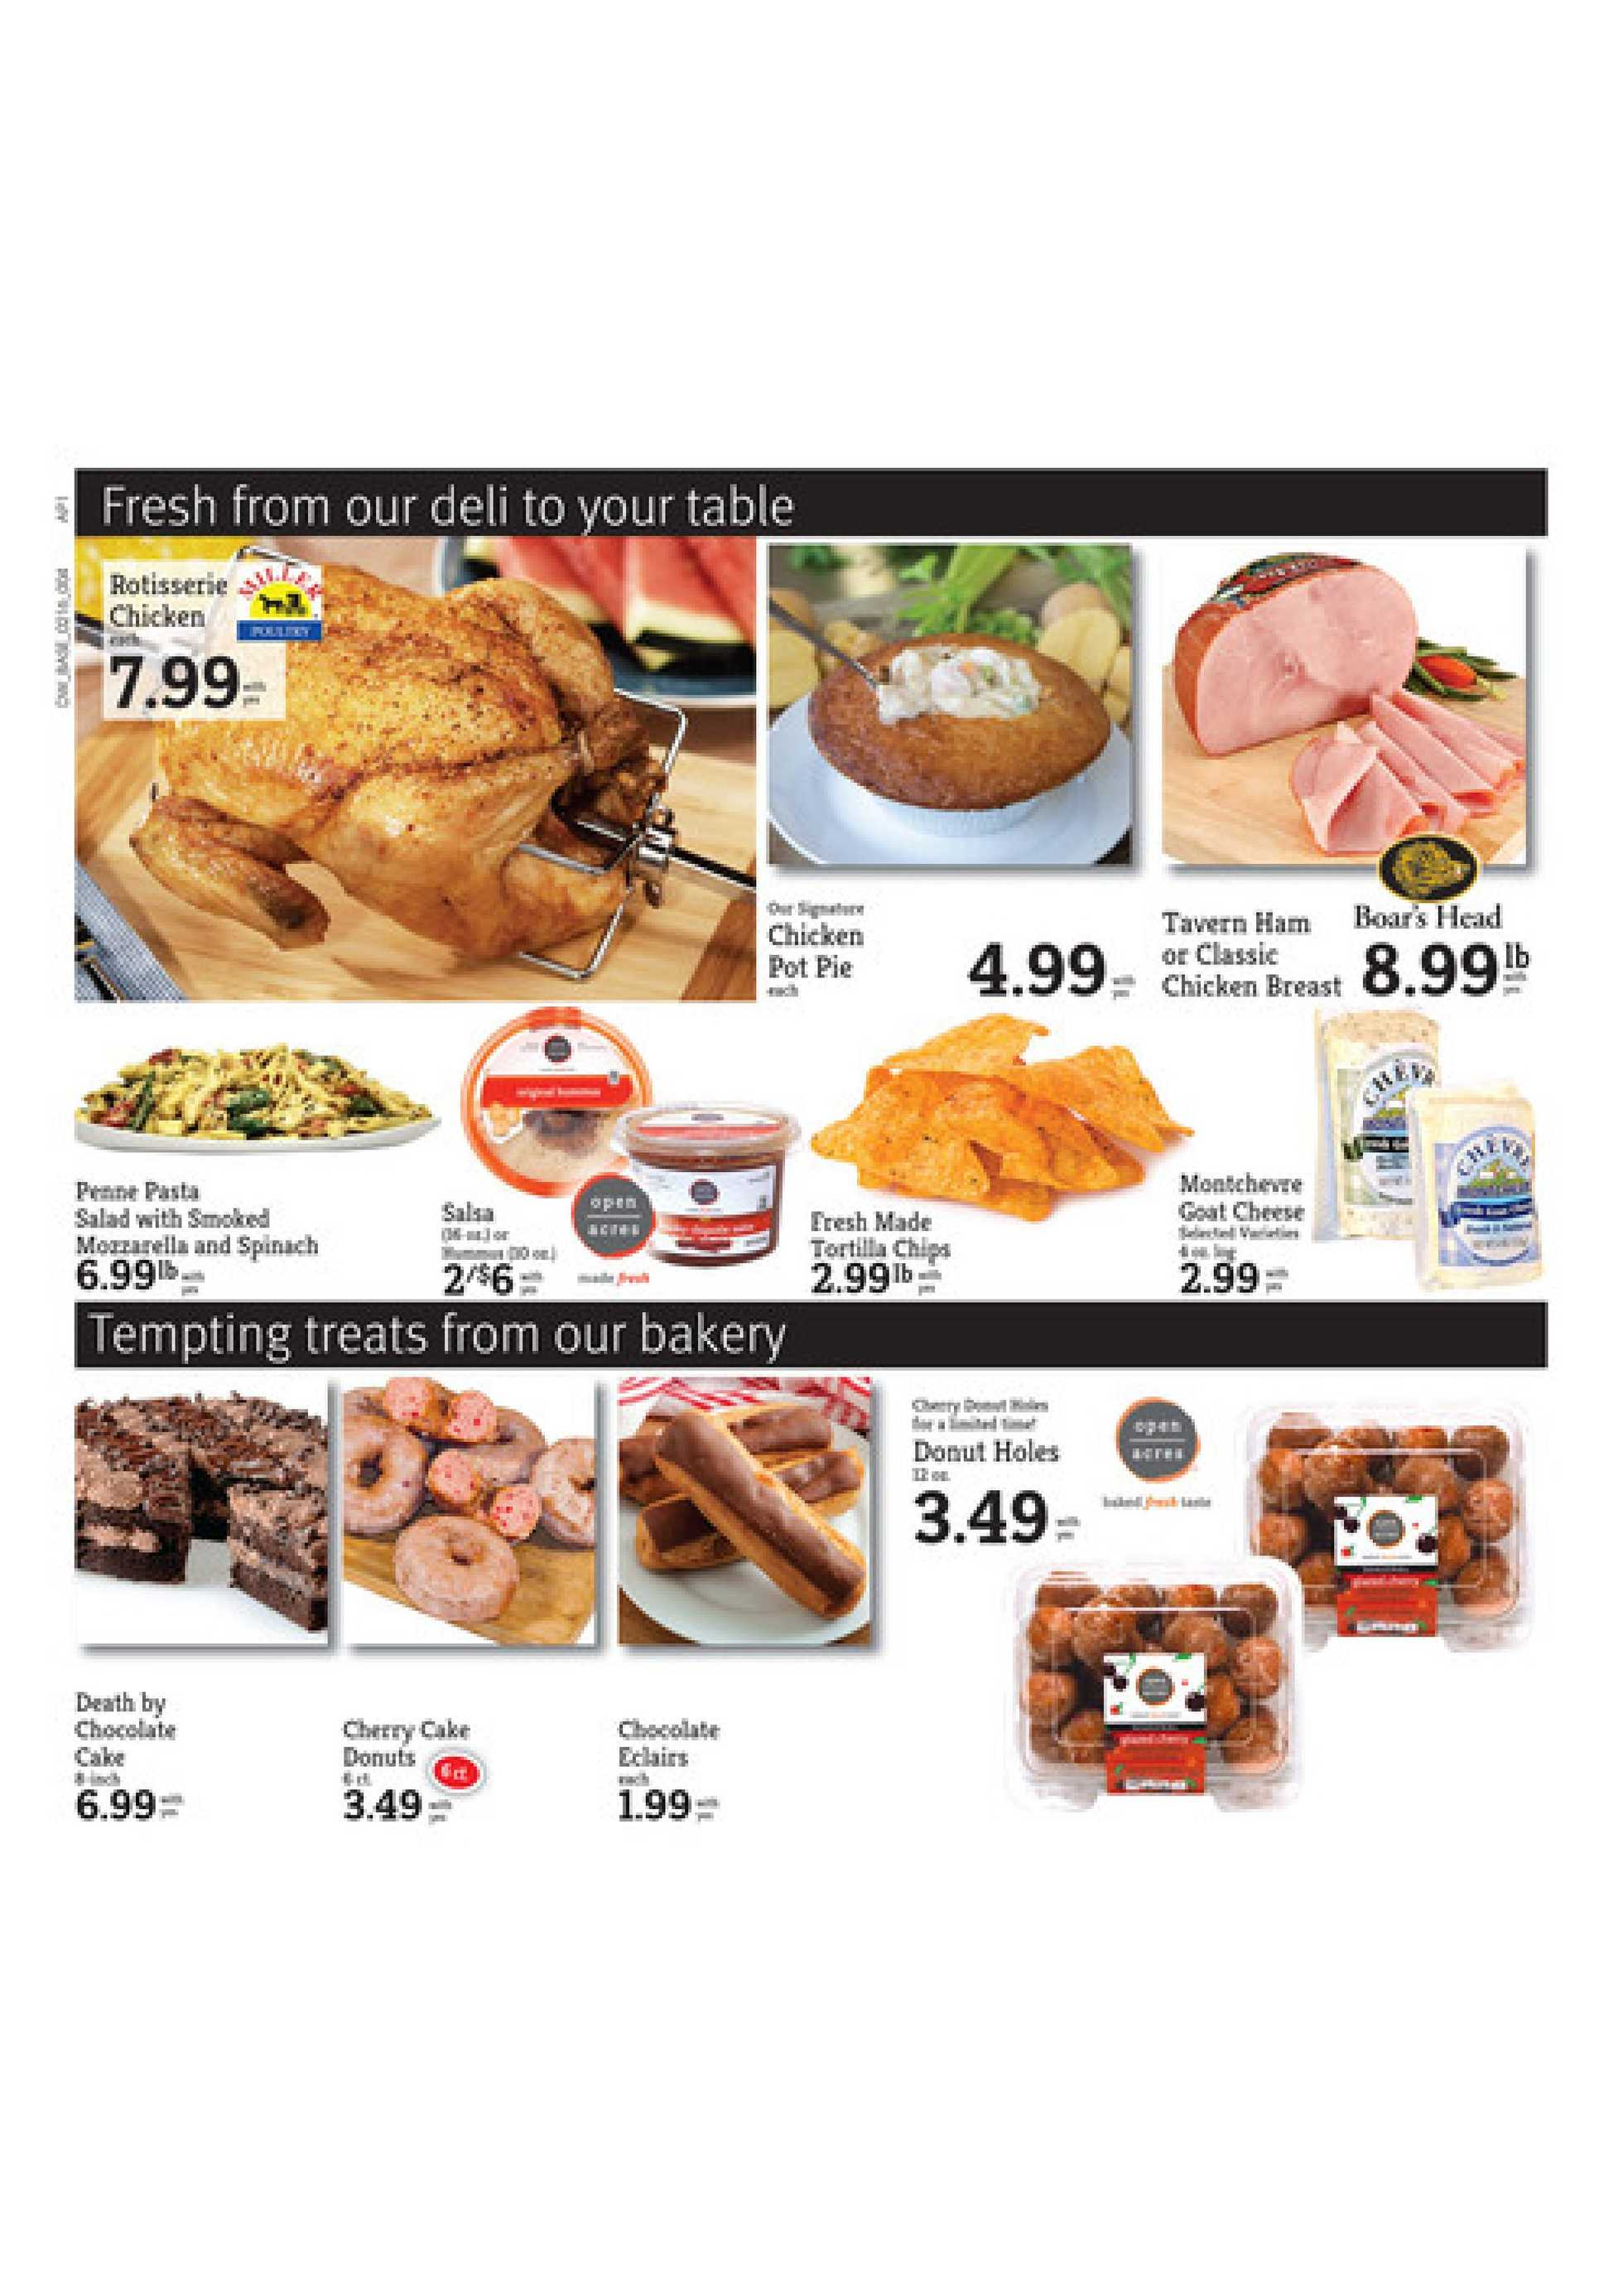 D&W Fresh Market - promo starting from 02/16/20 to 02/22/20 - page 4.